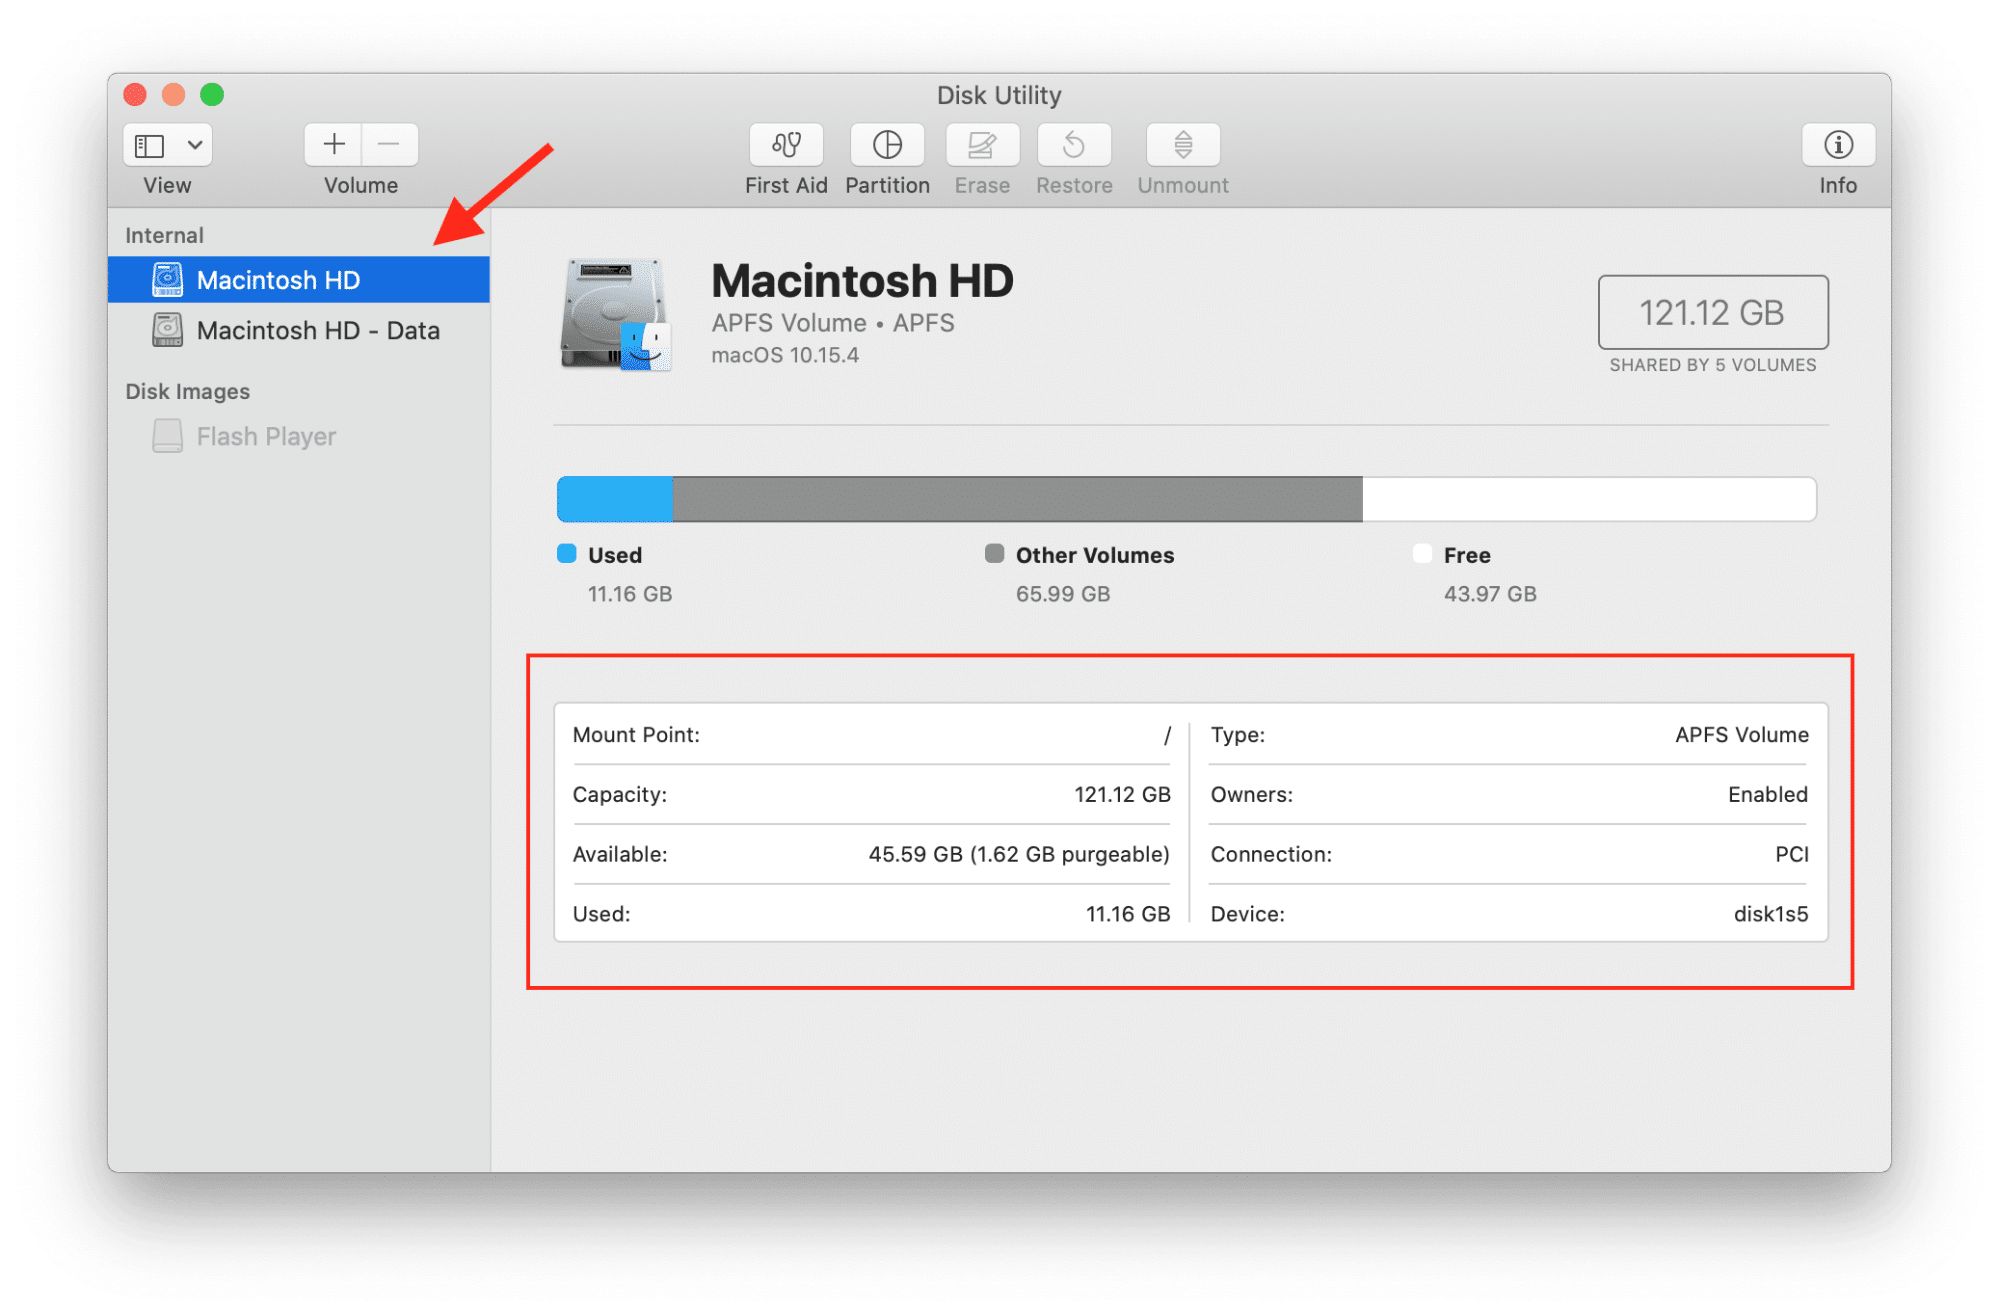 Macintosh HD section in Disk utility